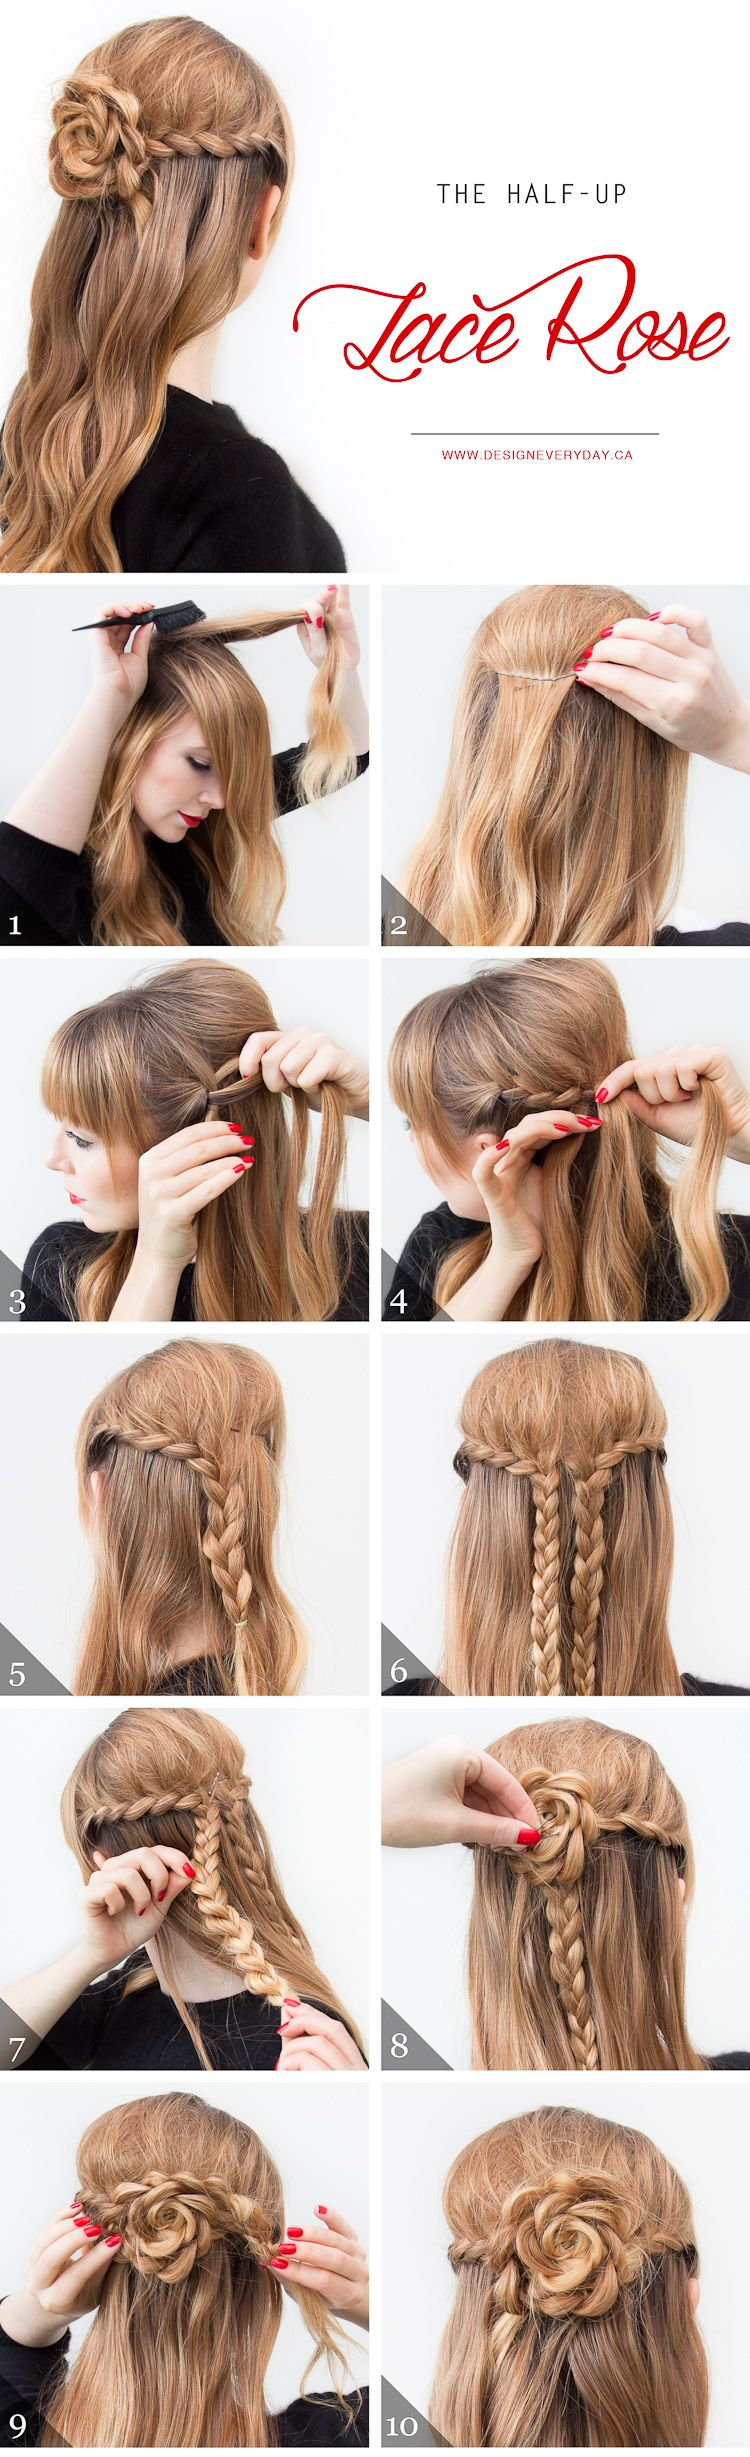 Easy Step-by-Step Hair Tutorials You Must See And Try To Copy - fashionsy.com